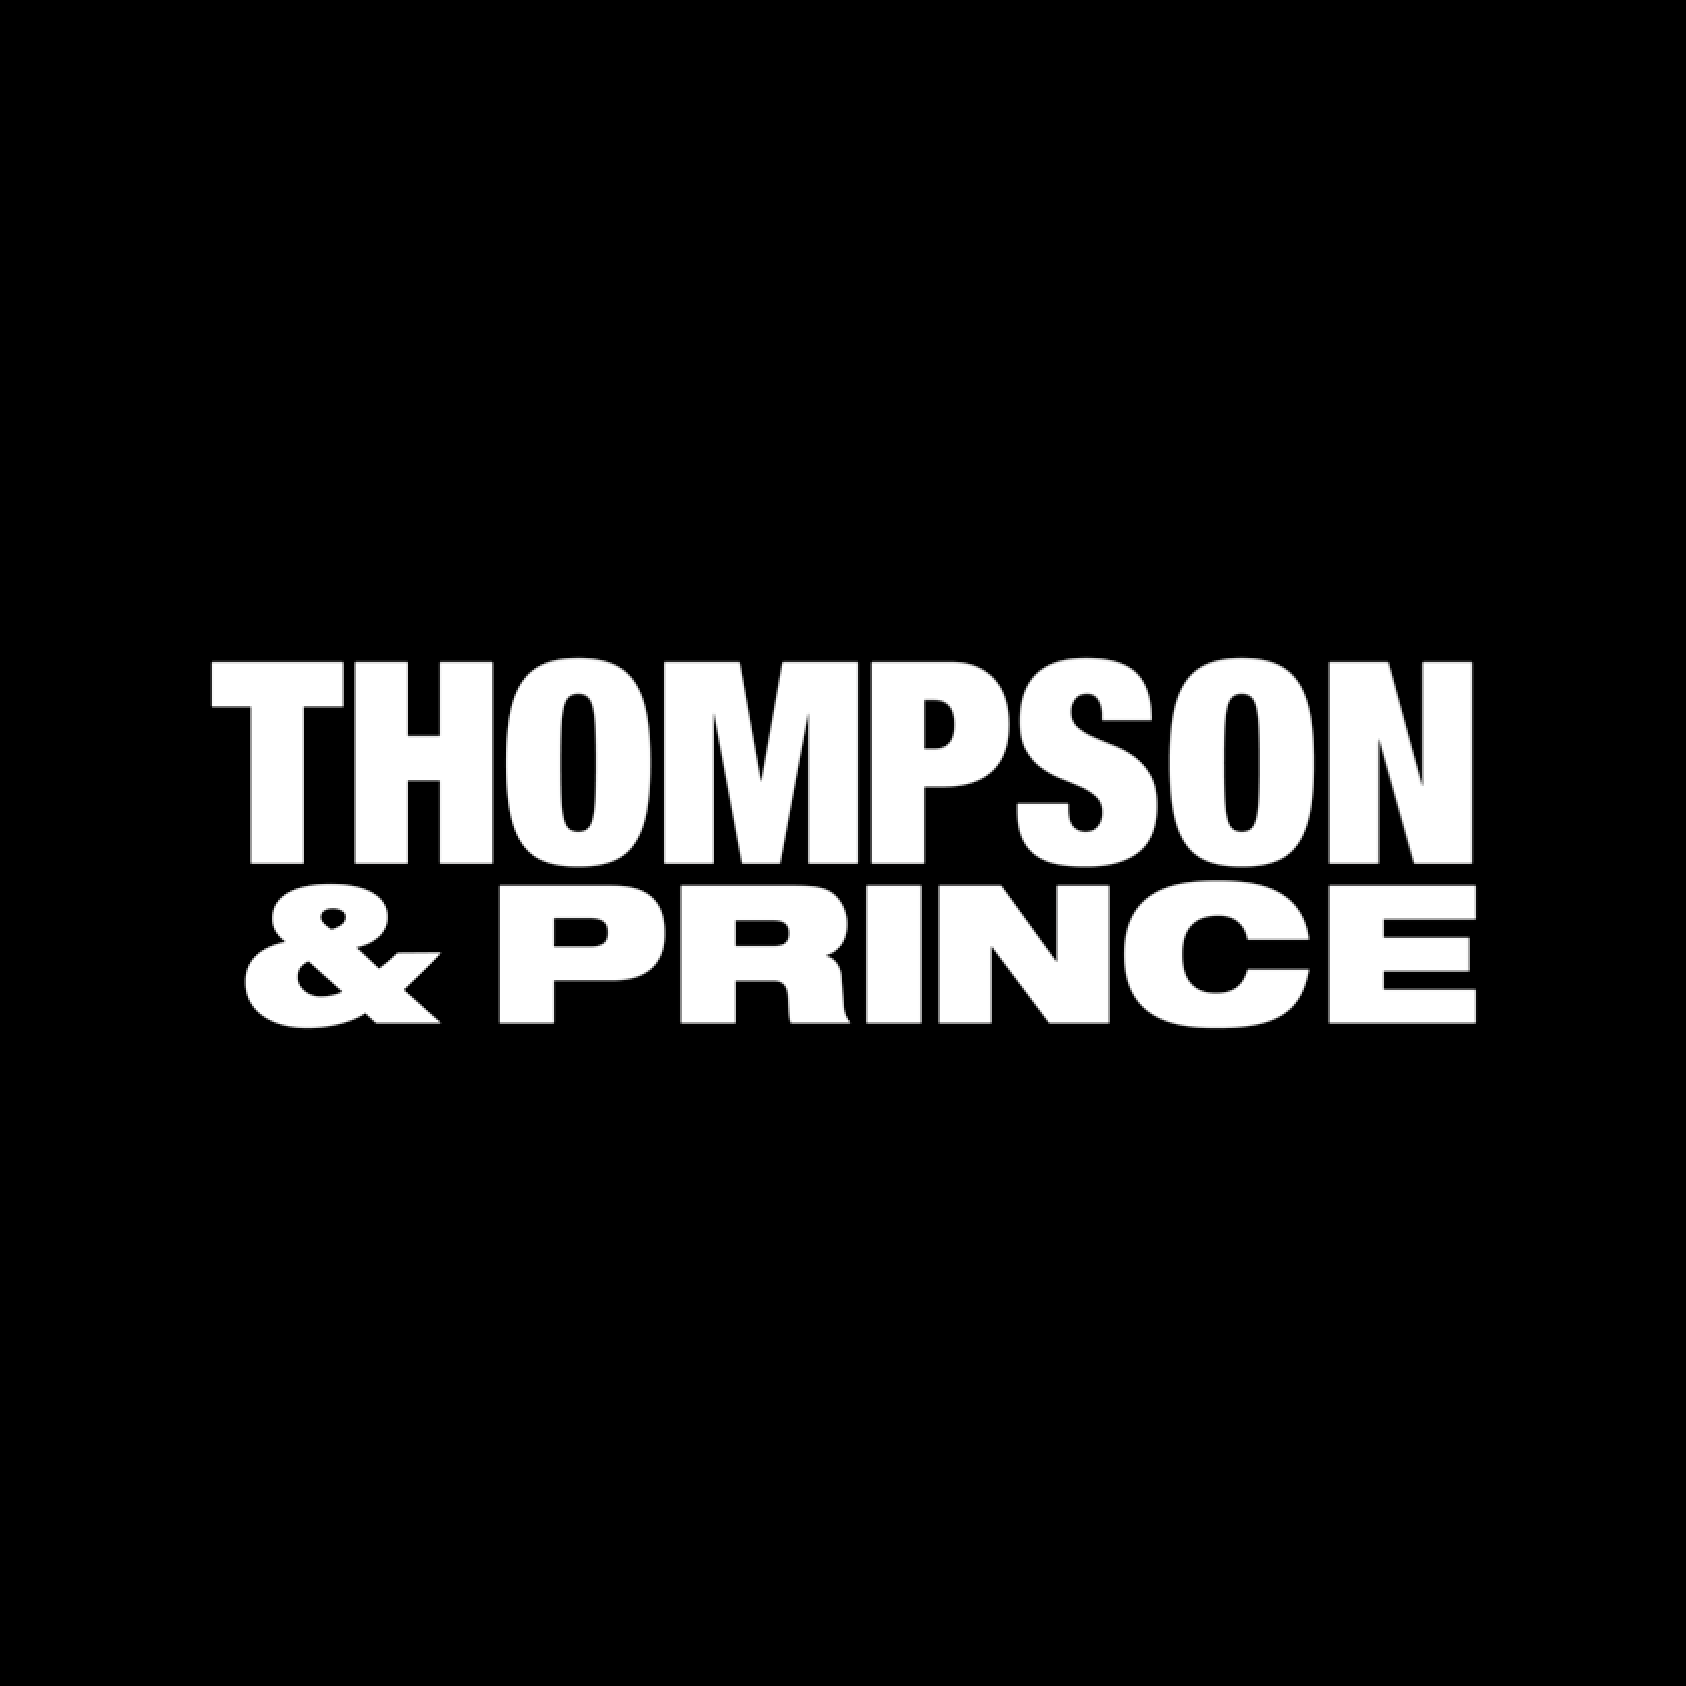 Thompson & Prince Logo